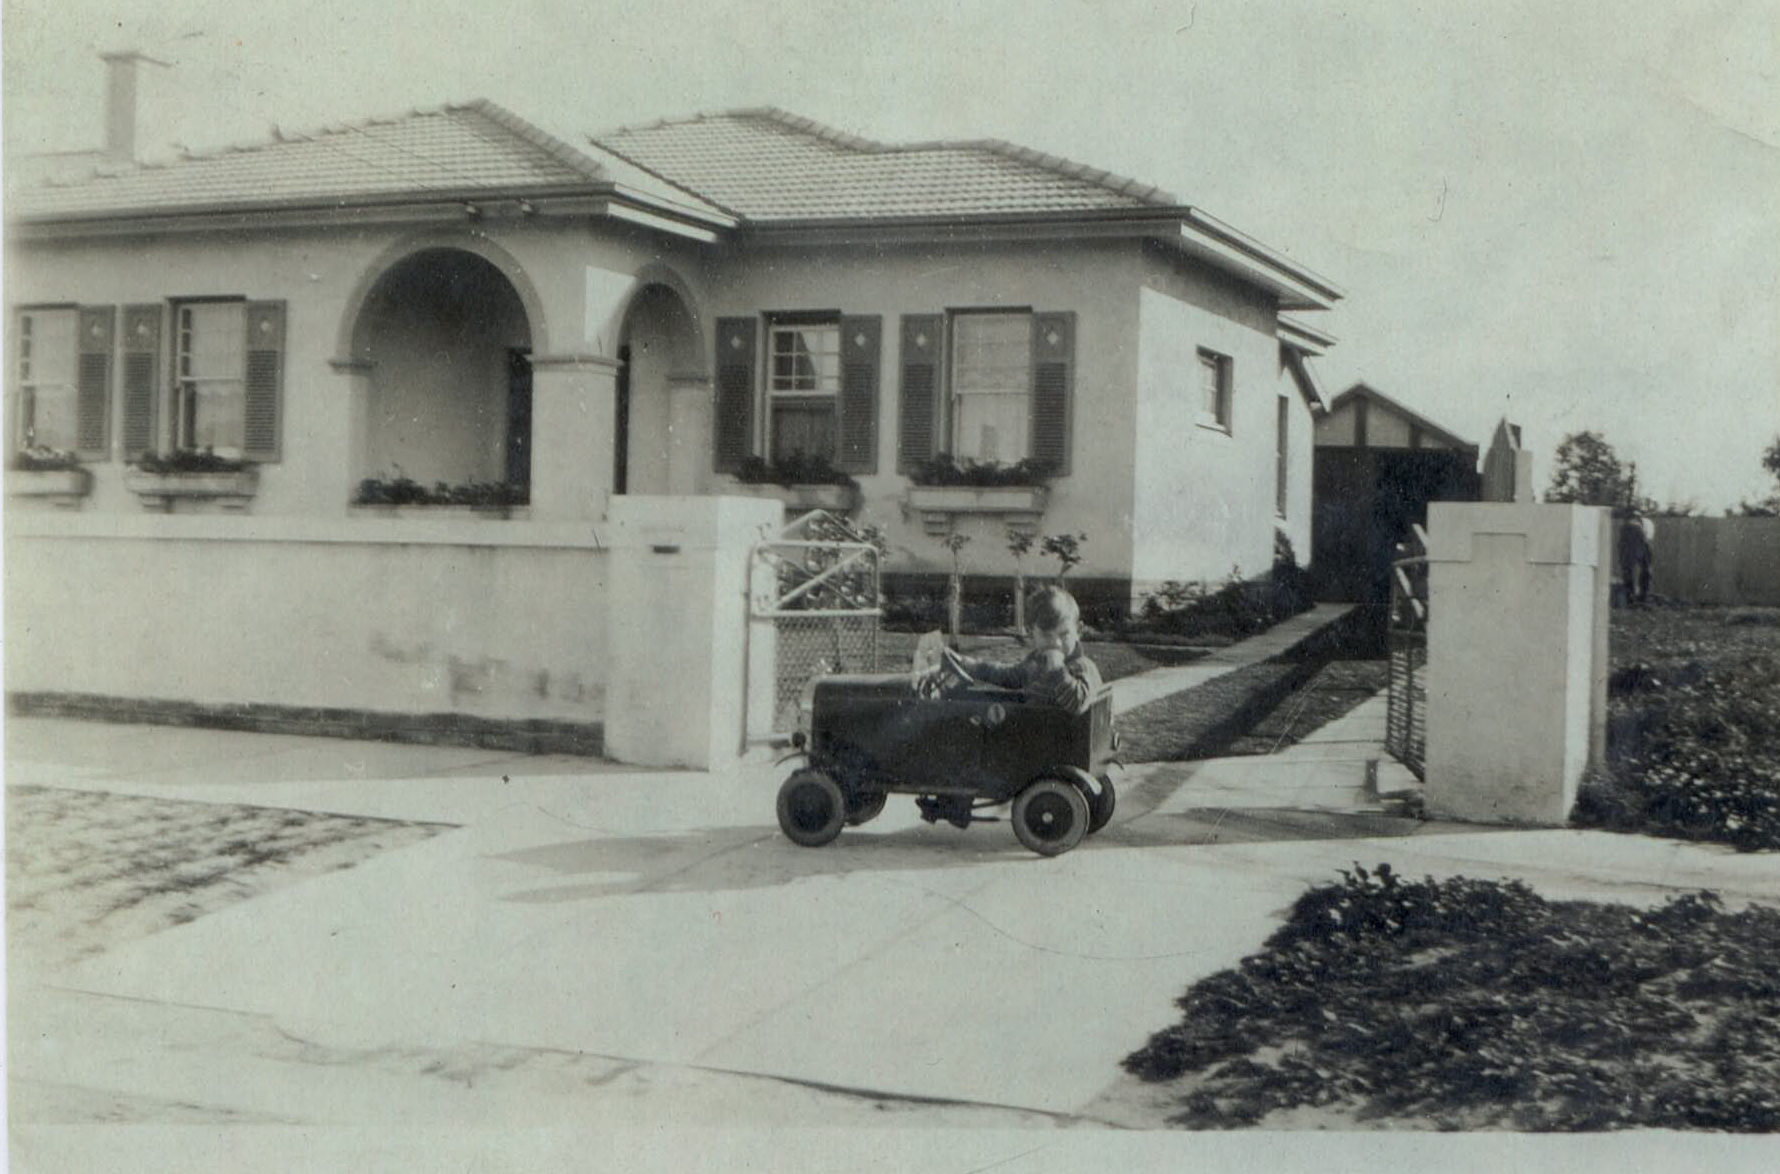 4 Raynes Street, Caulfield about 1933. Brian Norbury in peddle car